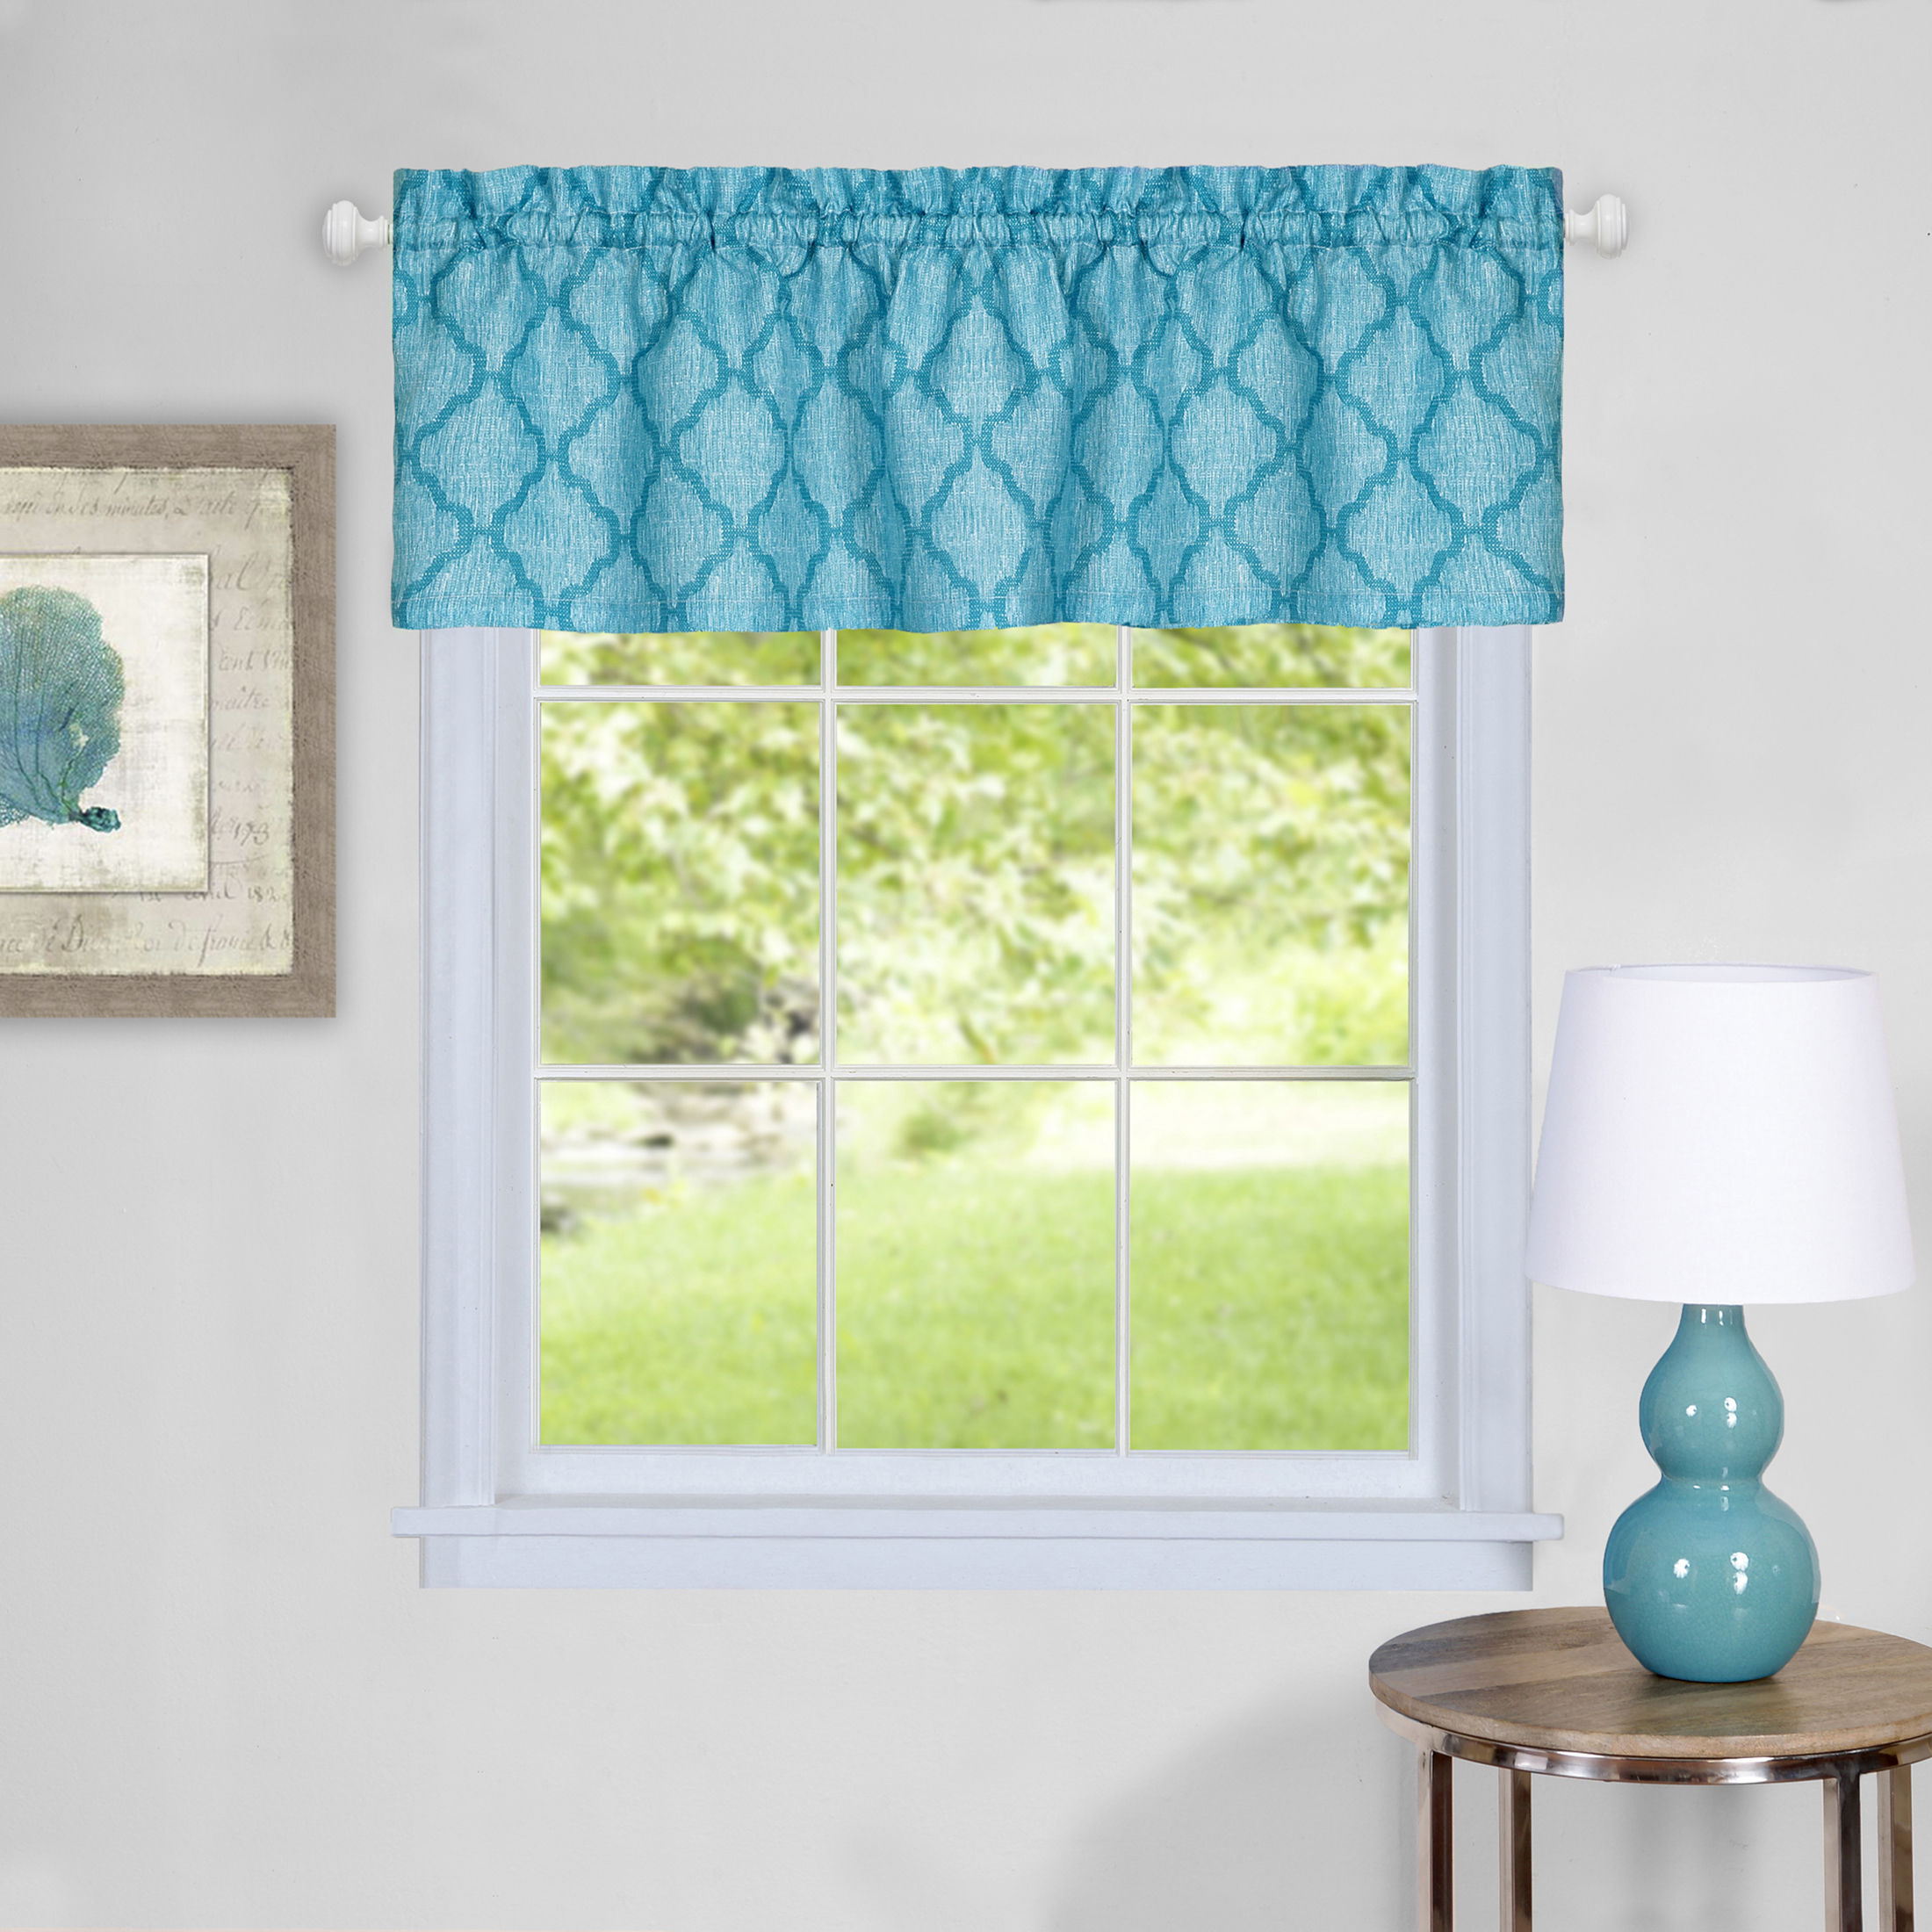 3 Piece Window Kitchen Curtain Set Moroccan Trellis Design Tier Pair Panels And Valance Assorted Colors Walmart Com Walmart Com